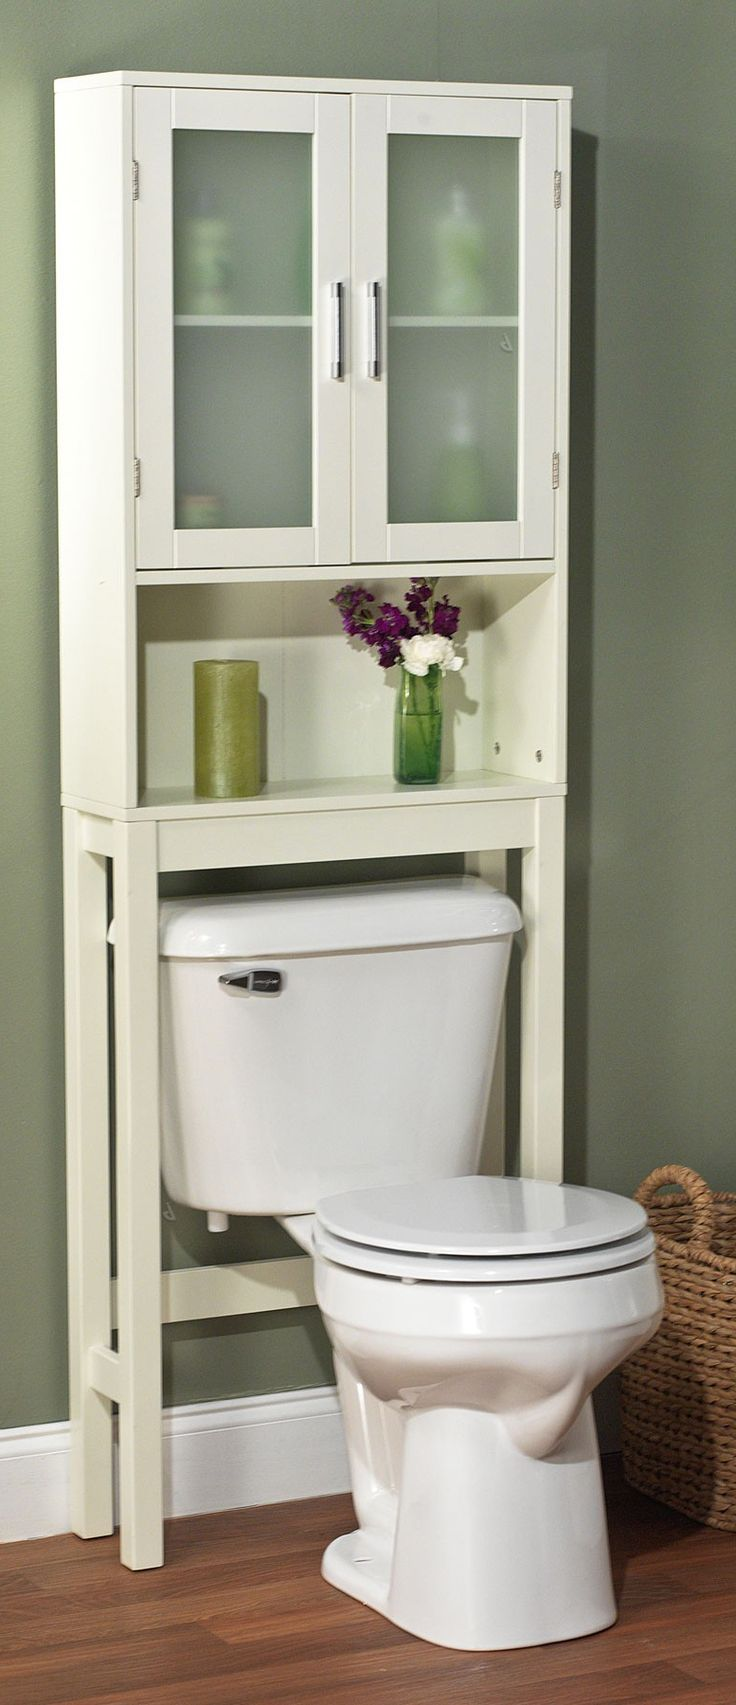 25 Best Ideas About Bathroom Space Savers On Pinterest Room Saver Door Stops For The Home